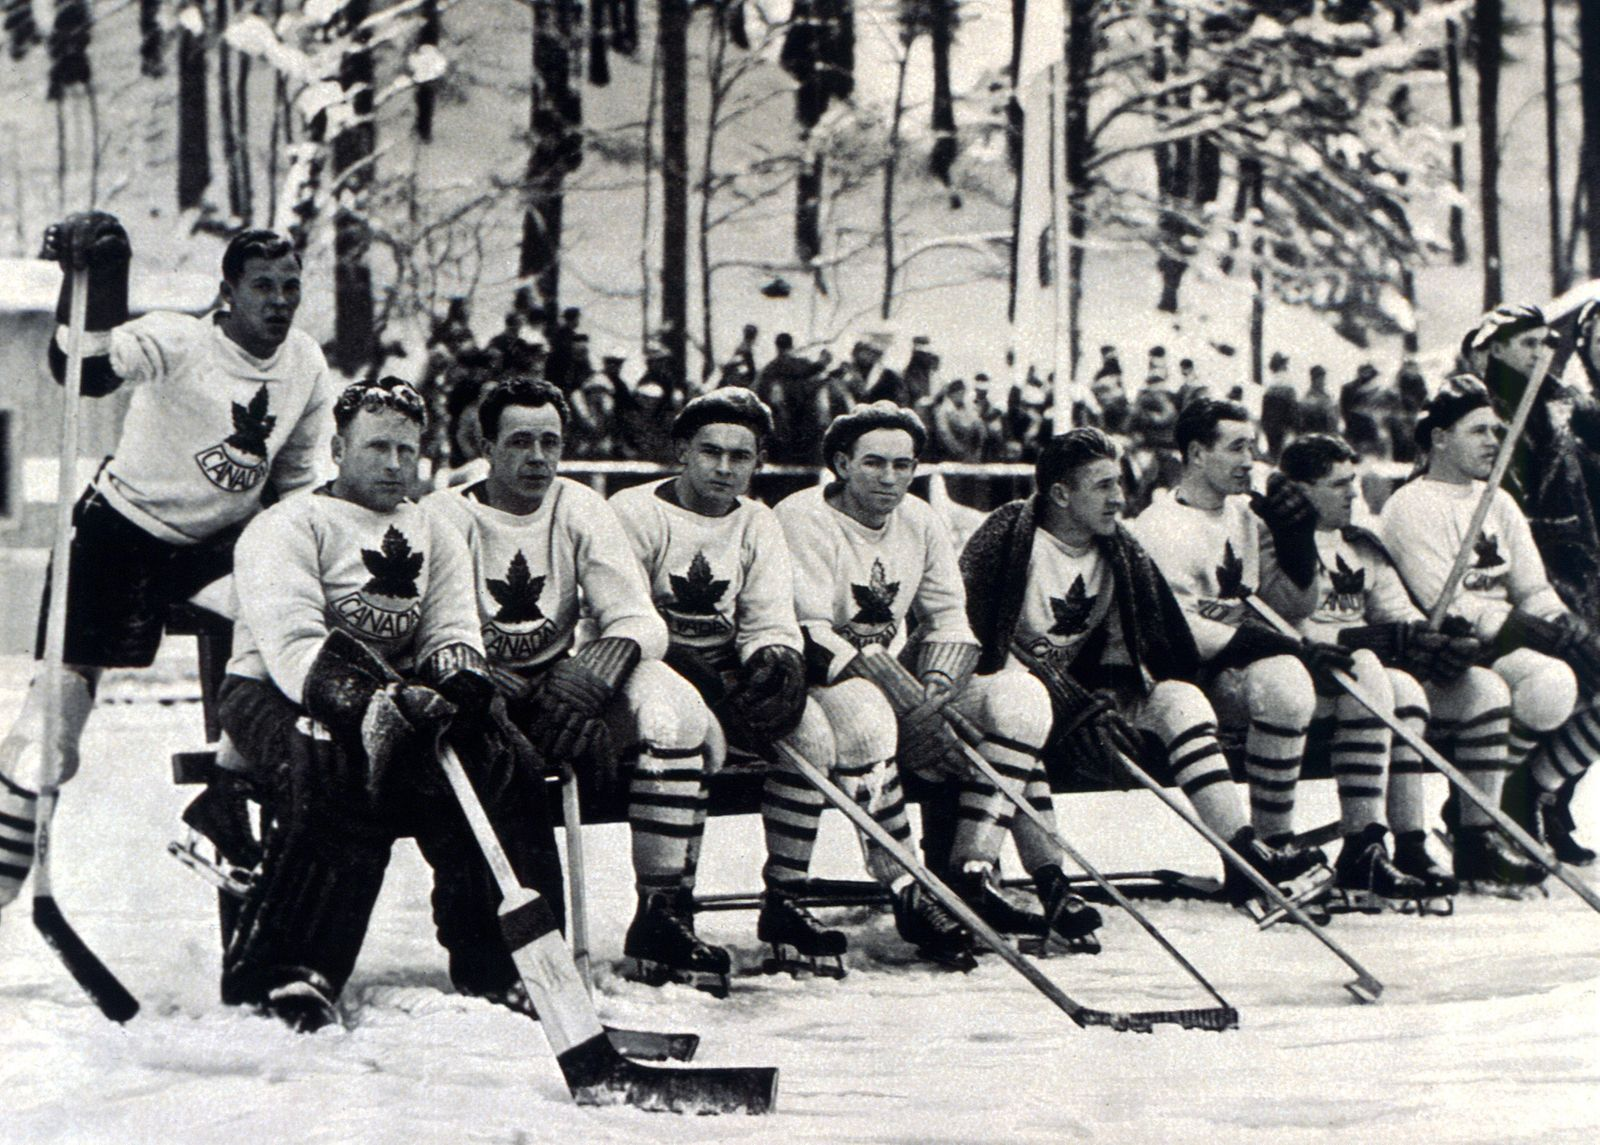 Winter Olympics 1936 - Garmisch and Partenkirchen in Bavaria, Germany. Canada ice hockey team, the favourites, who coul